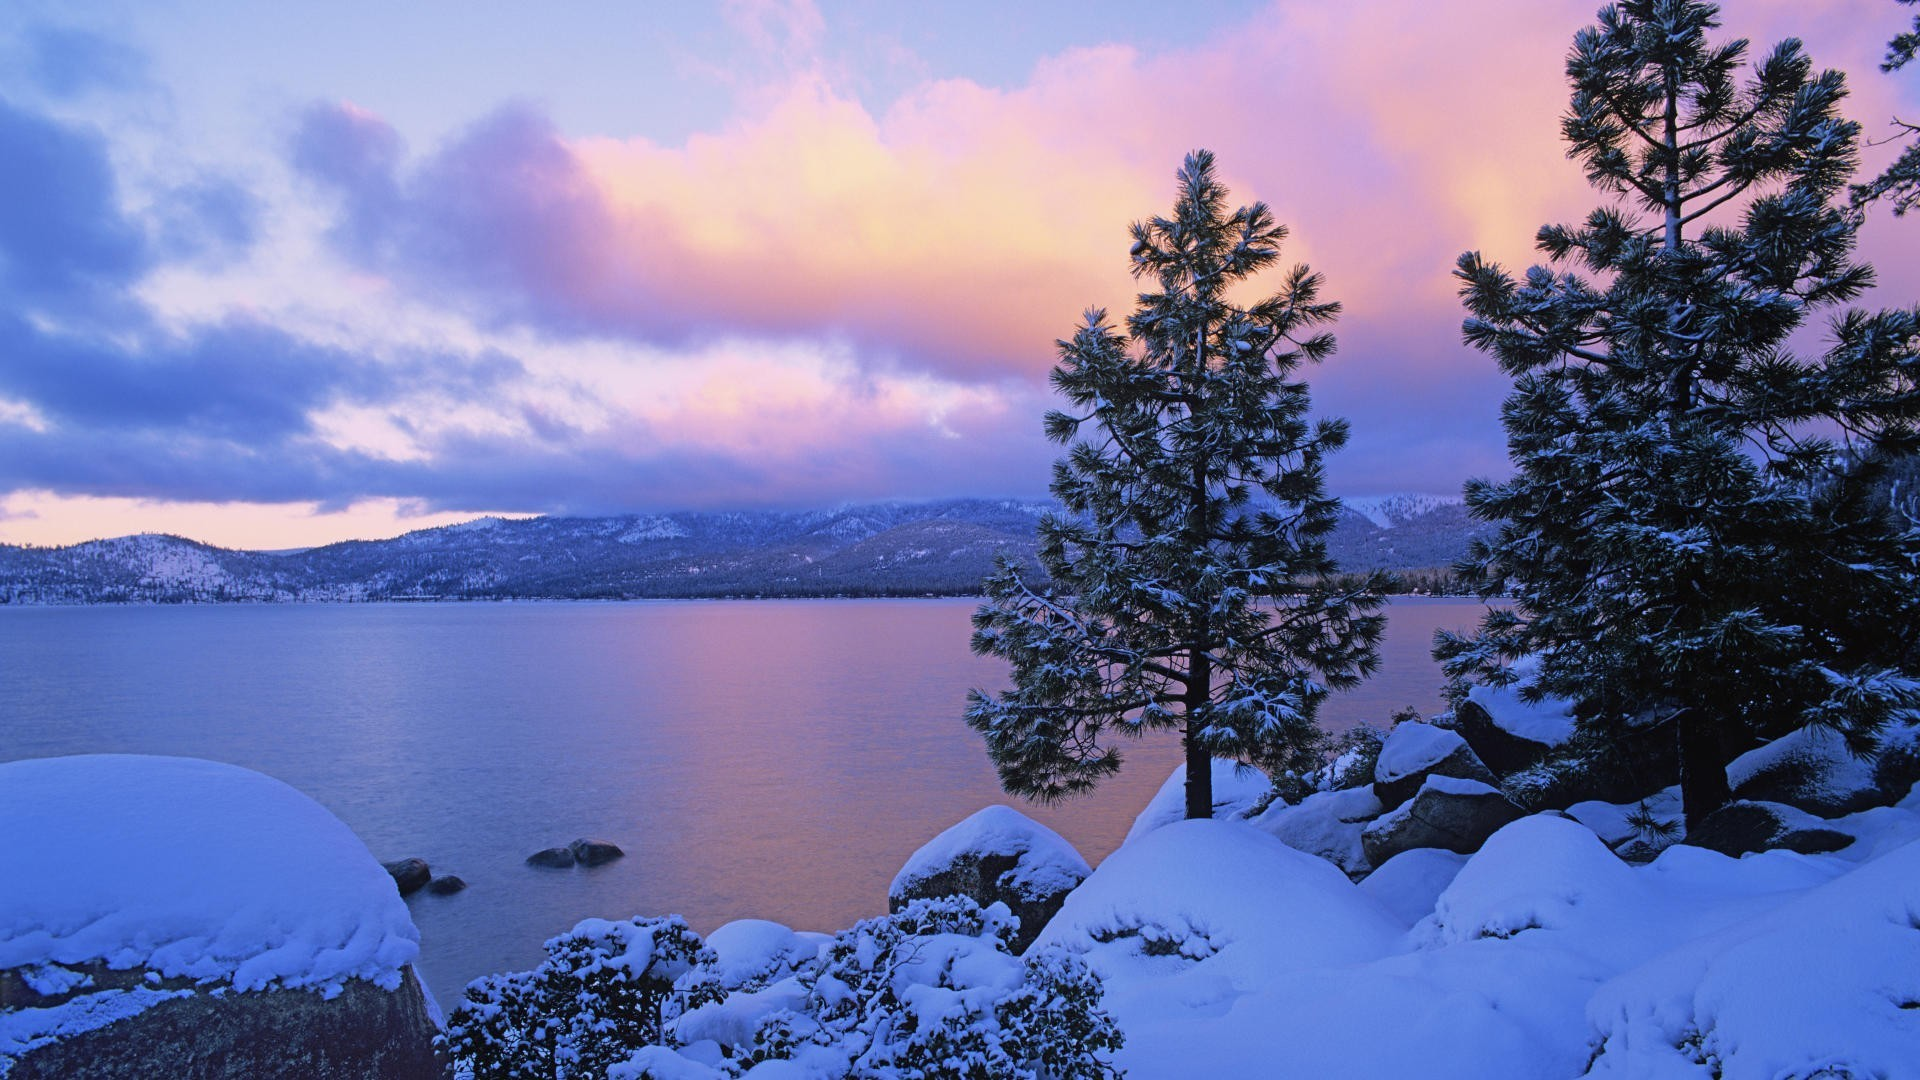 Winter Wallpapers High Definition with Wallpaper High Resolution  px 412.58 KB